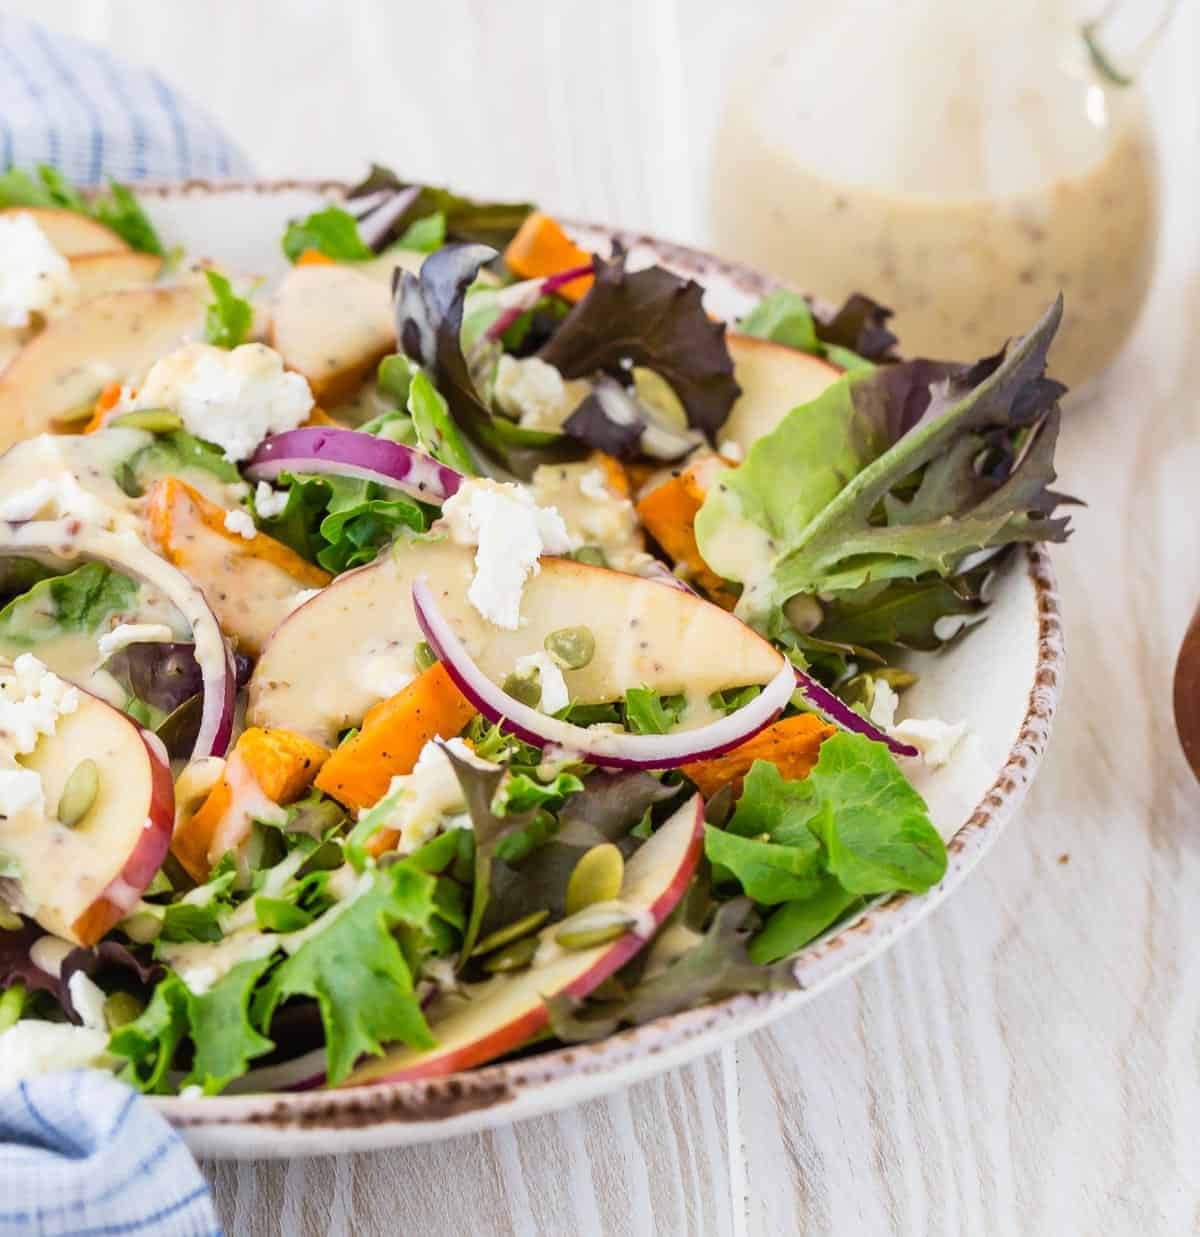 Colorful salad with creamy white dressing.